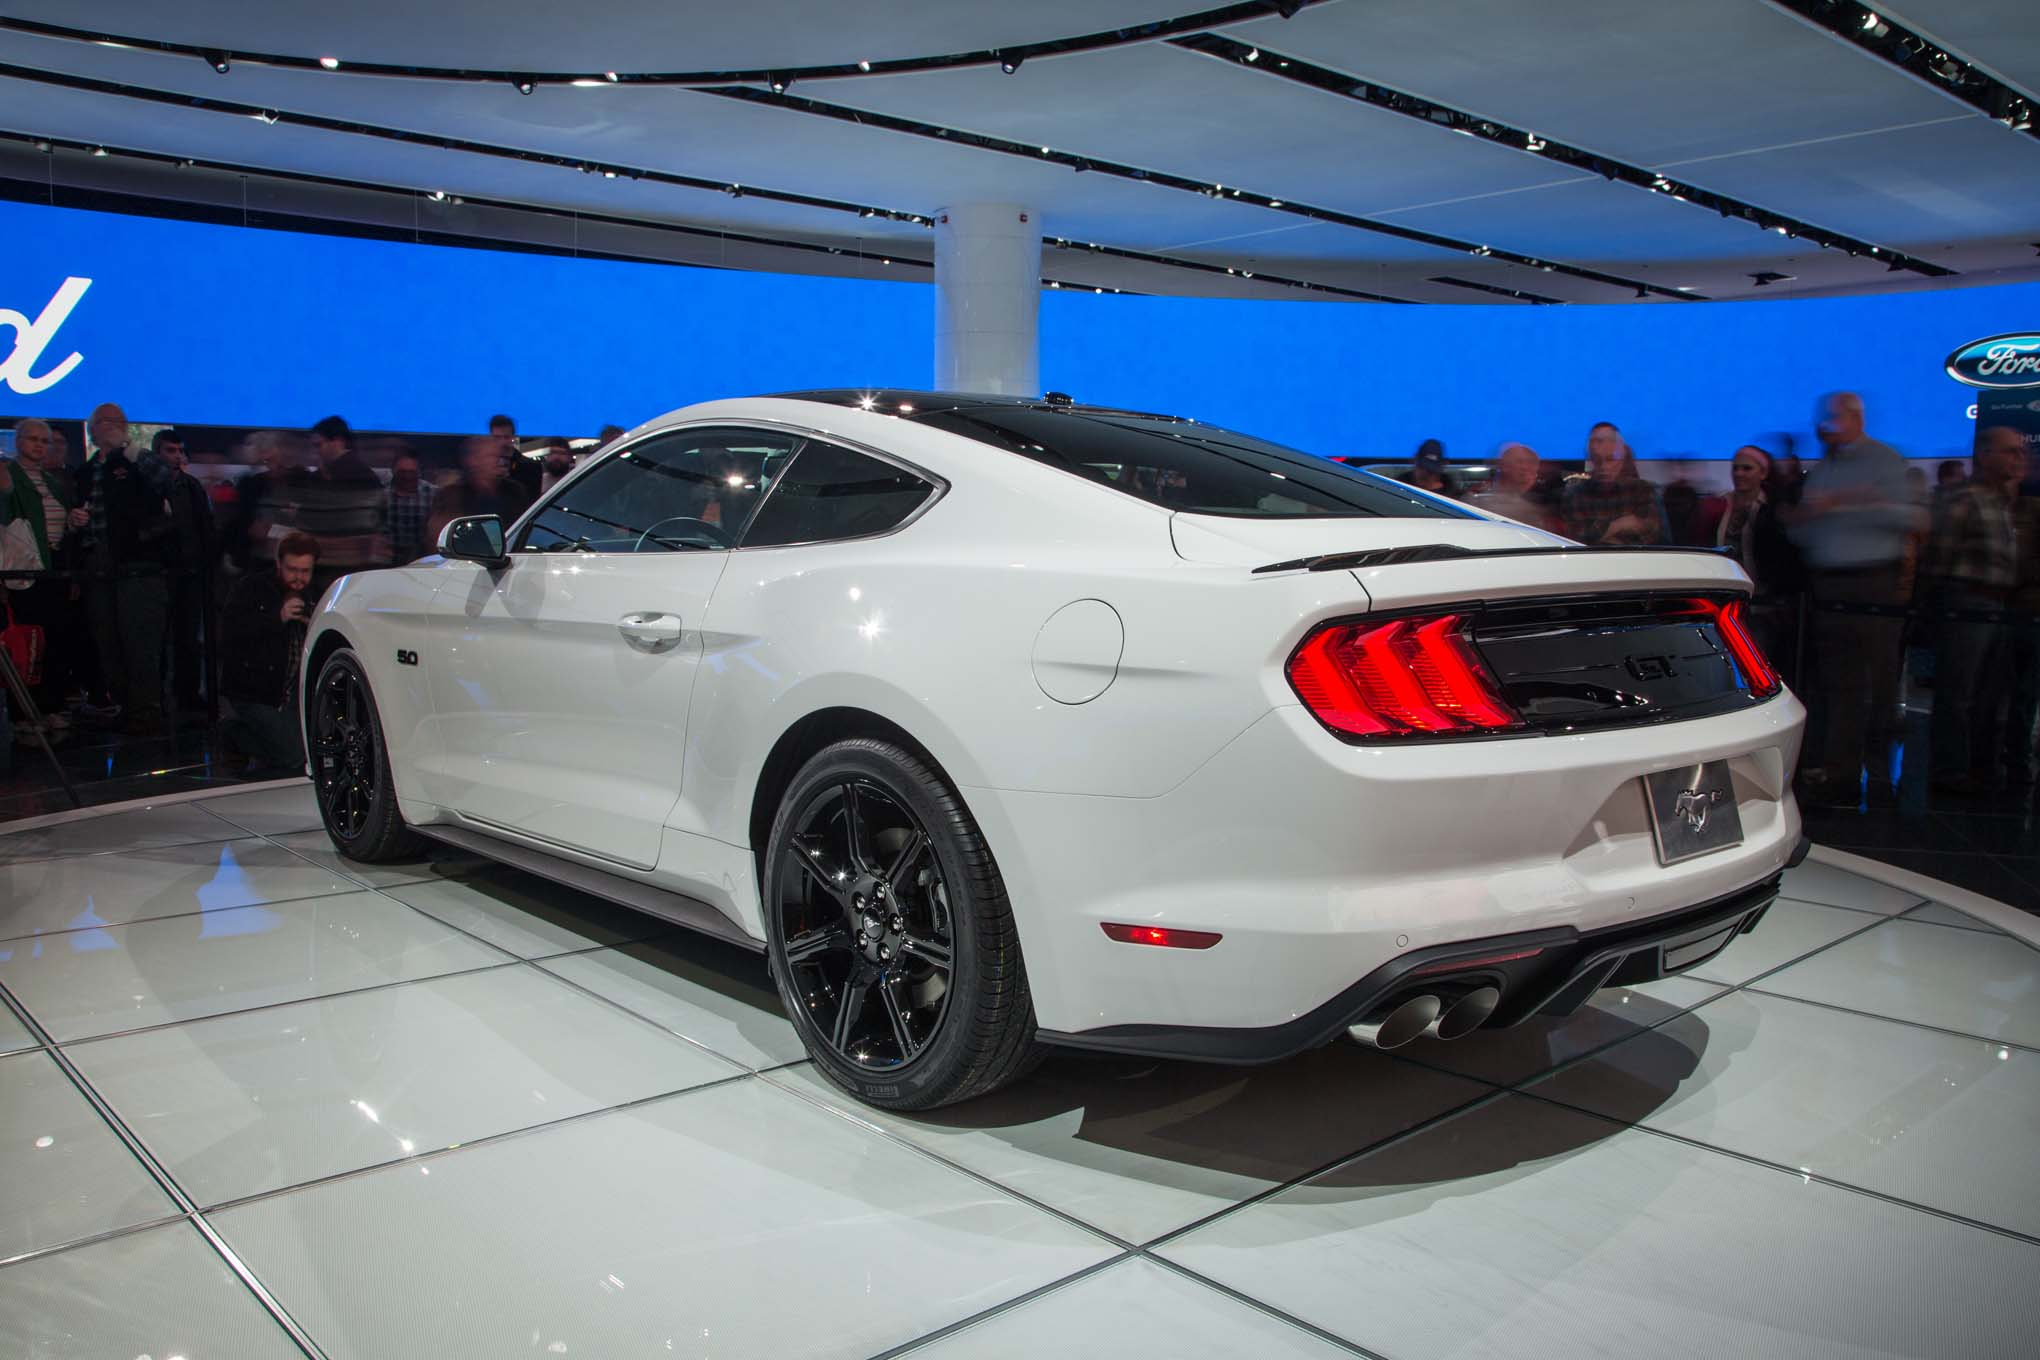 2018-Ford-Mustang-GT-rear-three-quarter-02